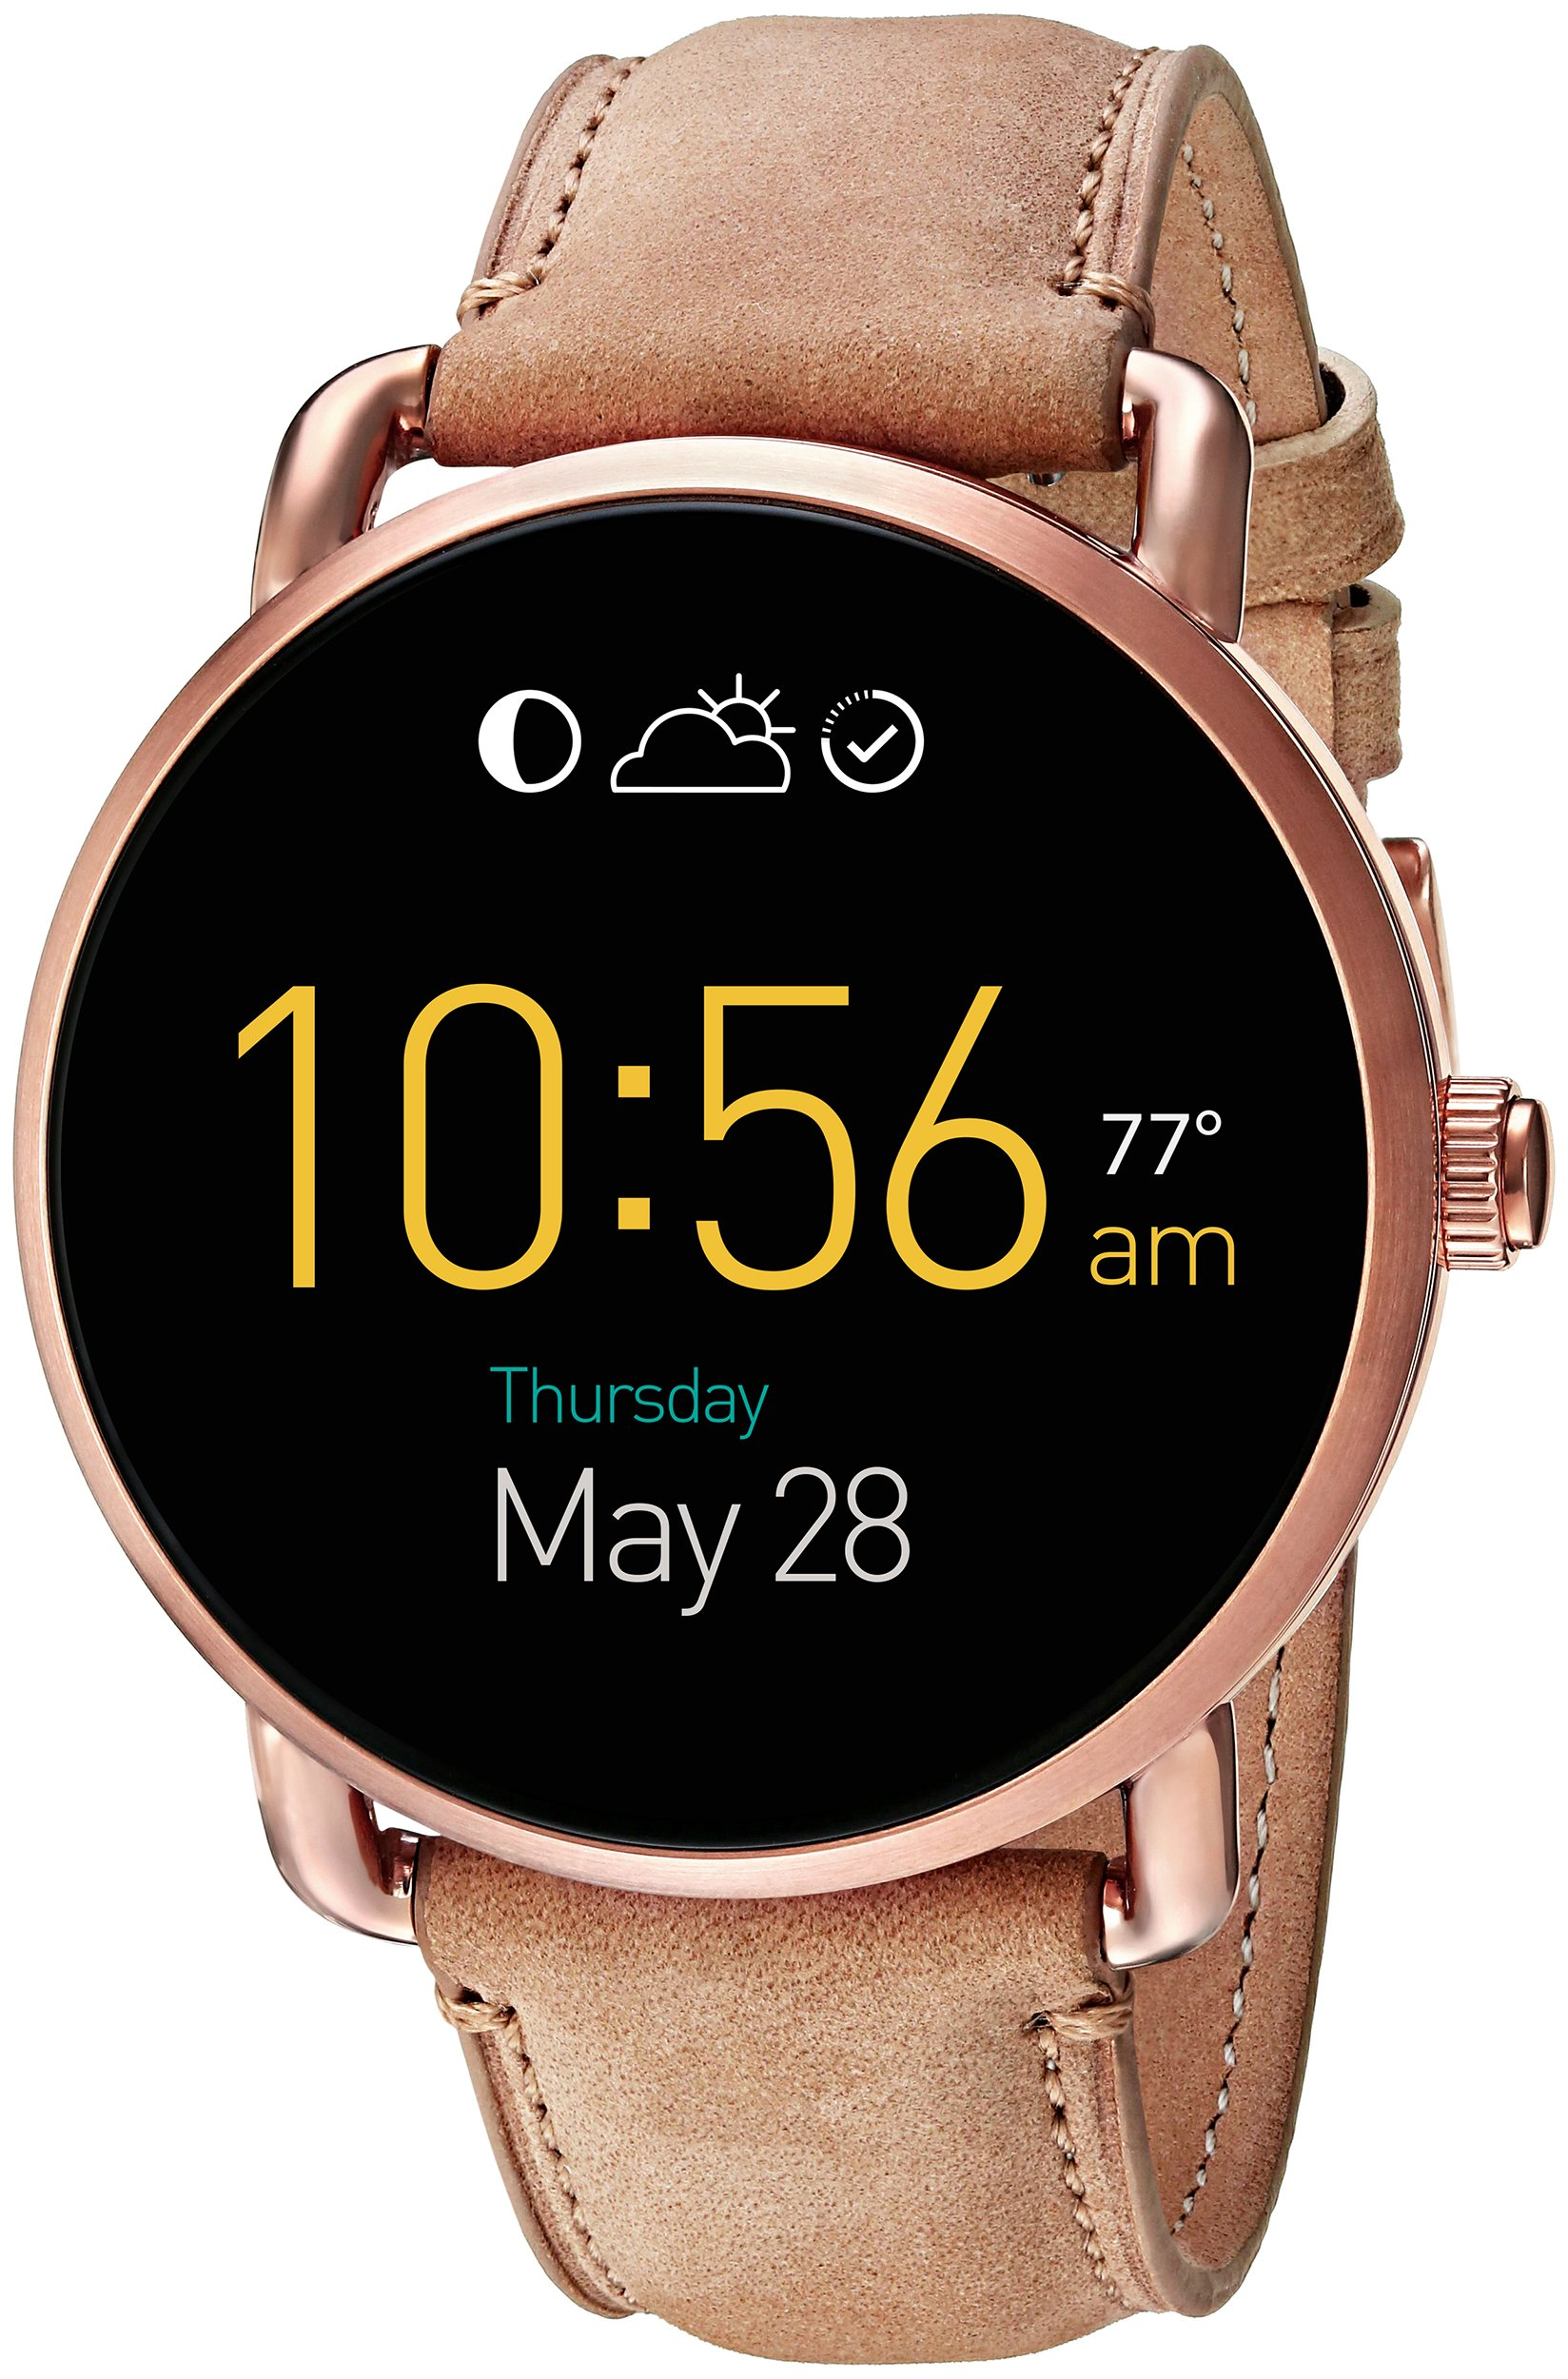 Fossil Q Wander Gen 2 Light Brown Leather Touchscreen Smartwatch FTW2102 by Fossil (Image #1)